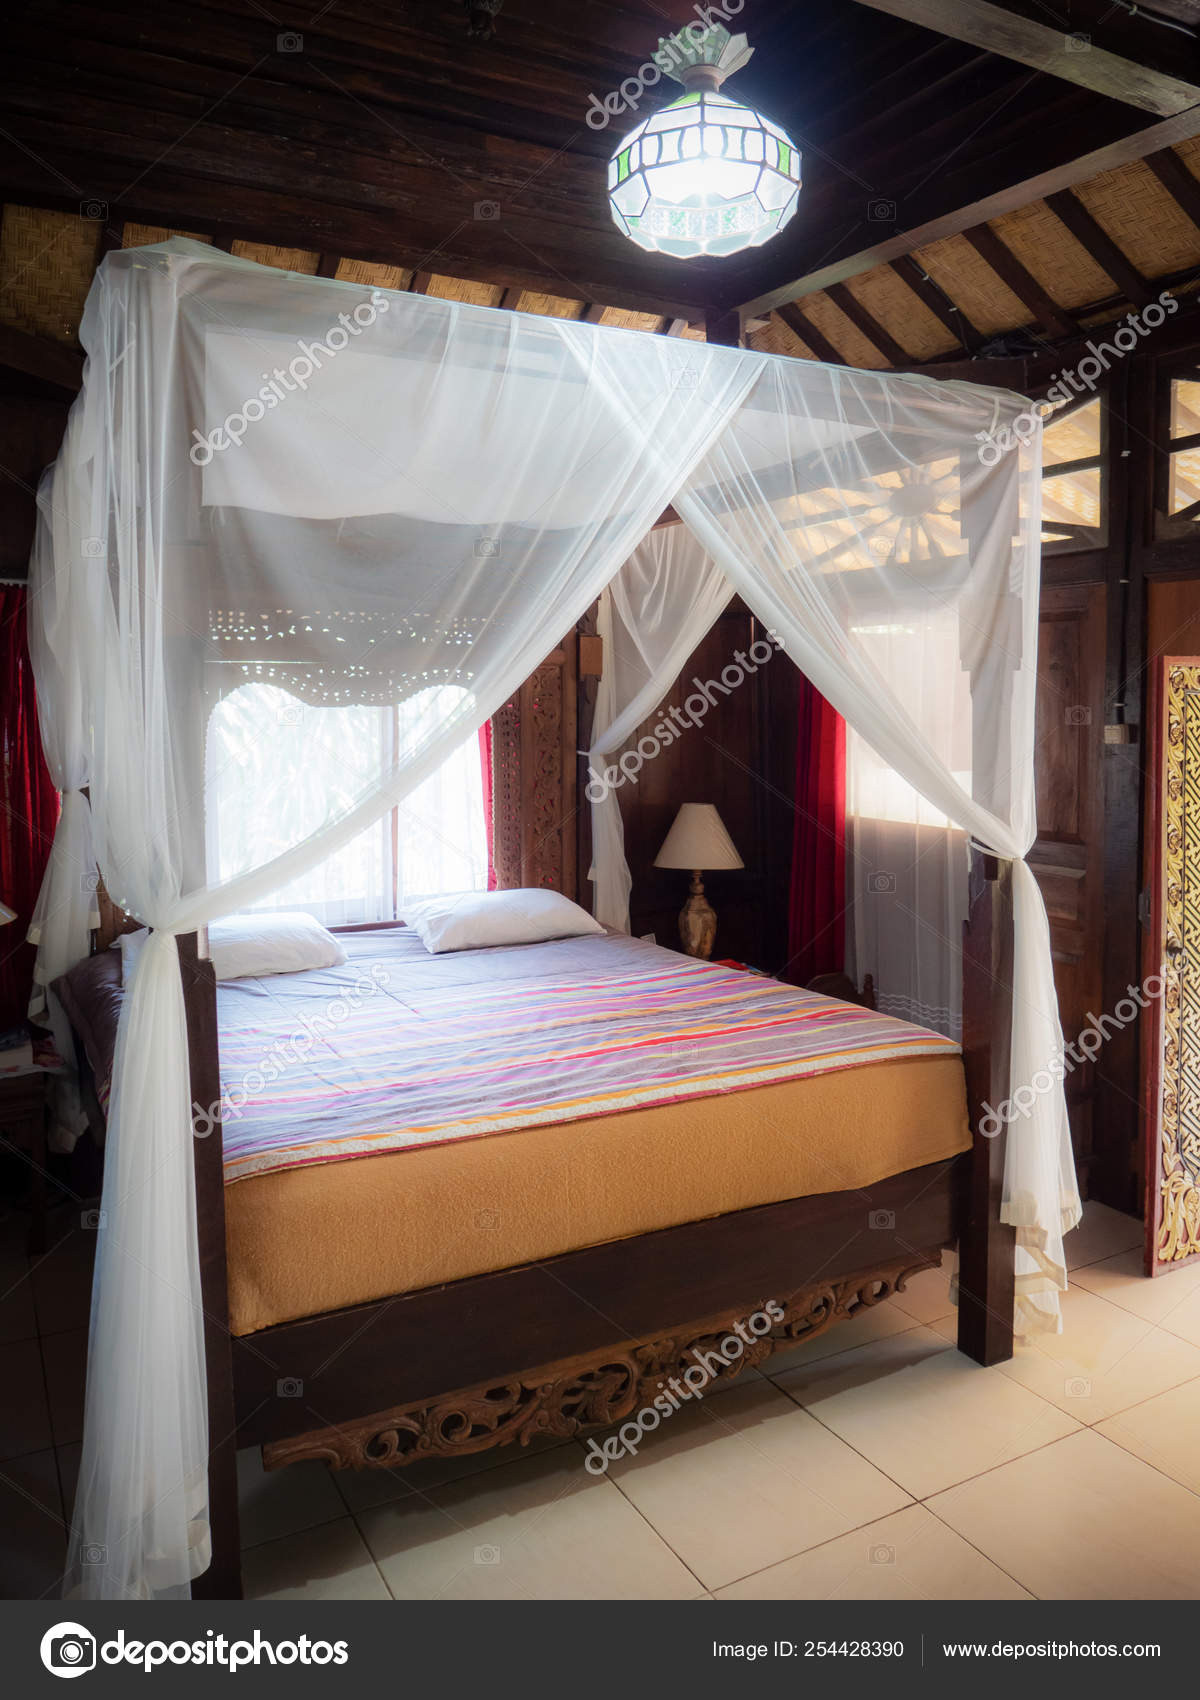 Picture of: Curtains Four Poster Bed Four Poster Bed With White Curtains In Indonesian Bungalow Stock Photo C Thakala 254428390